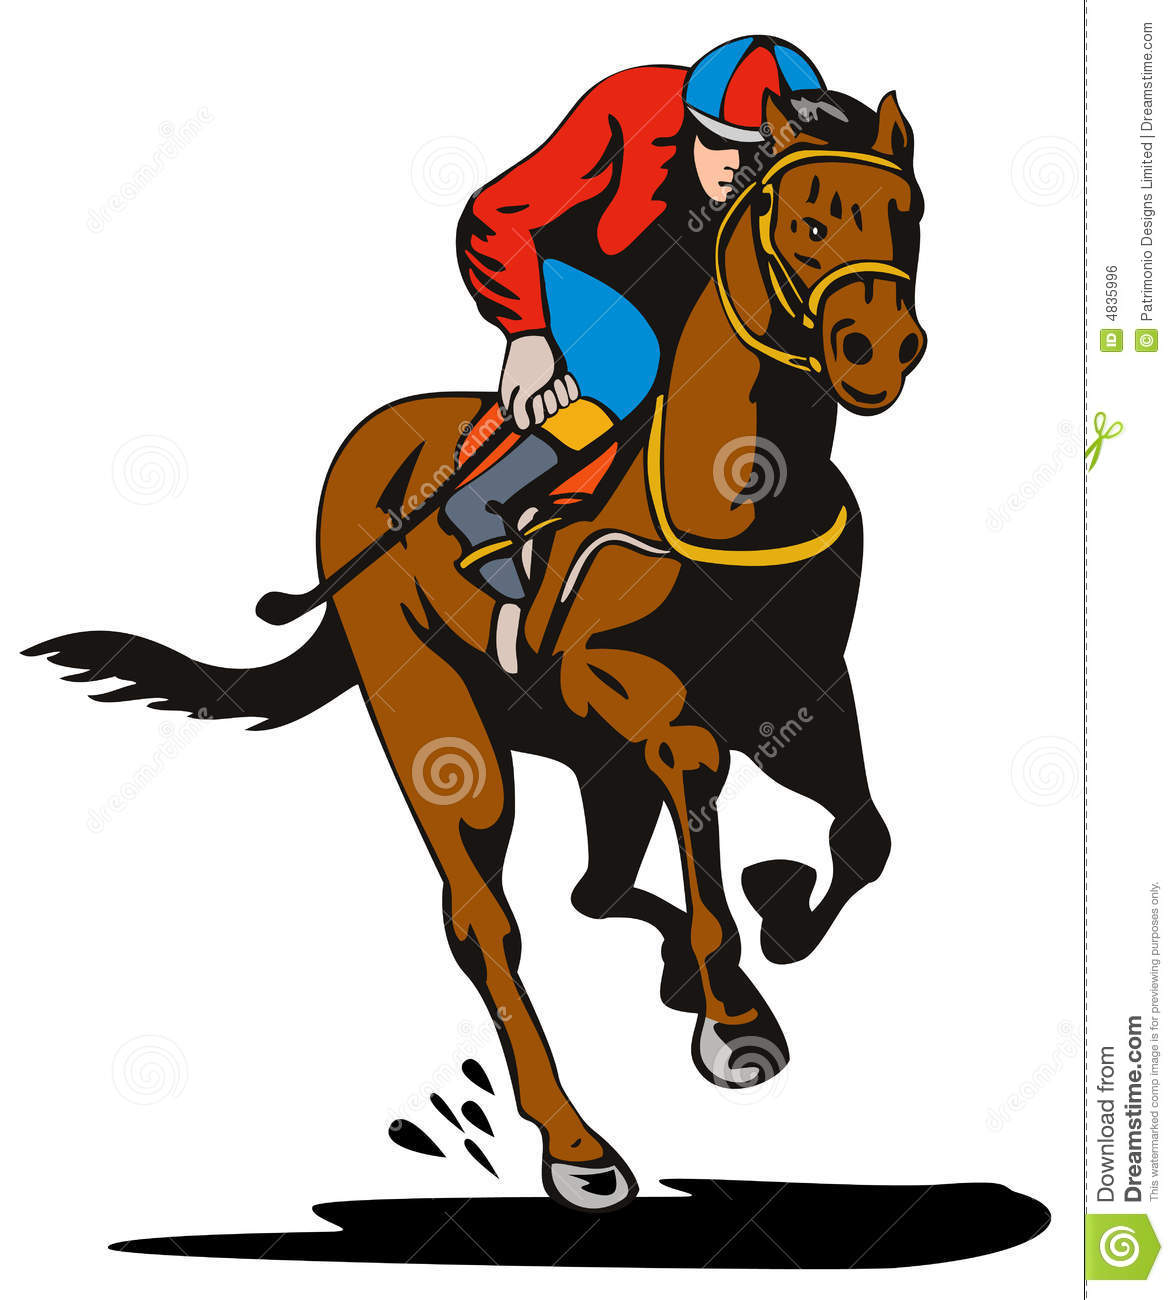 Free horse racing images clipart clip art royalty free stock Horse Racing Clipart | Clipart Panda - Free Clipart Images clip art royalty free stock